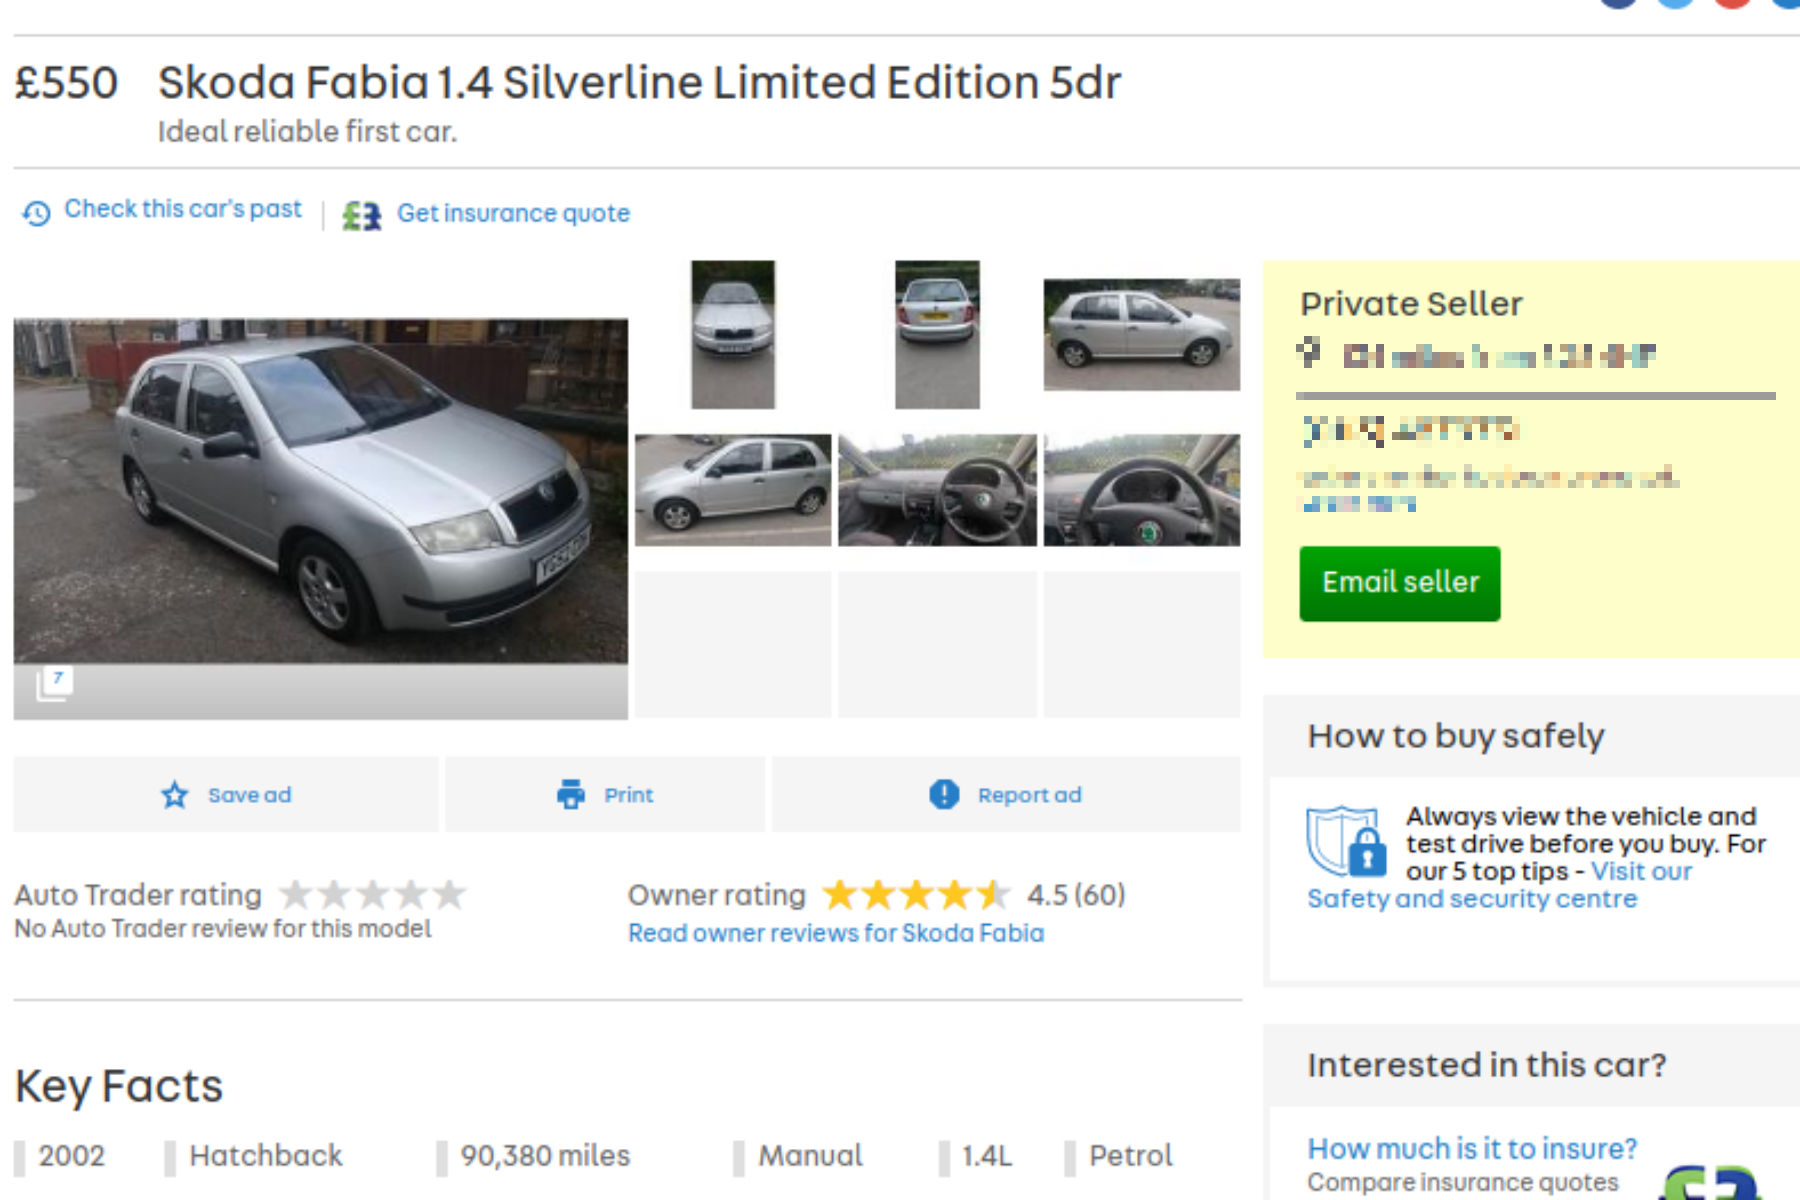 'Celebs' go crazy for £550 Skoda Fabia on Auto Trader